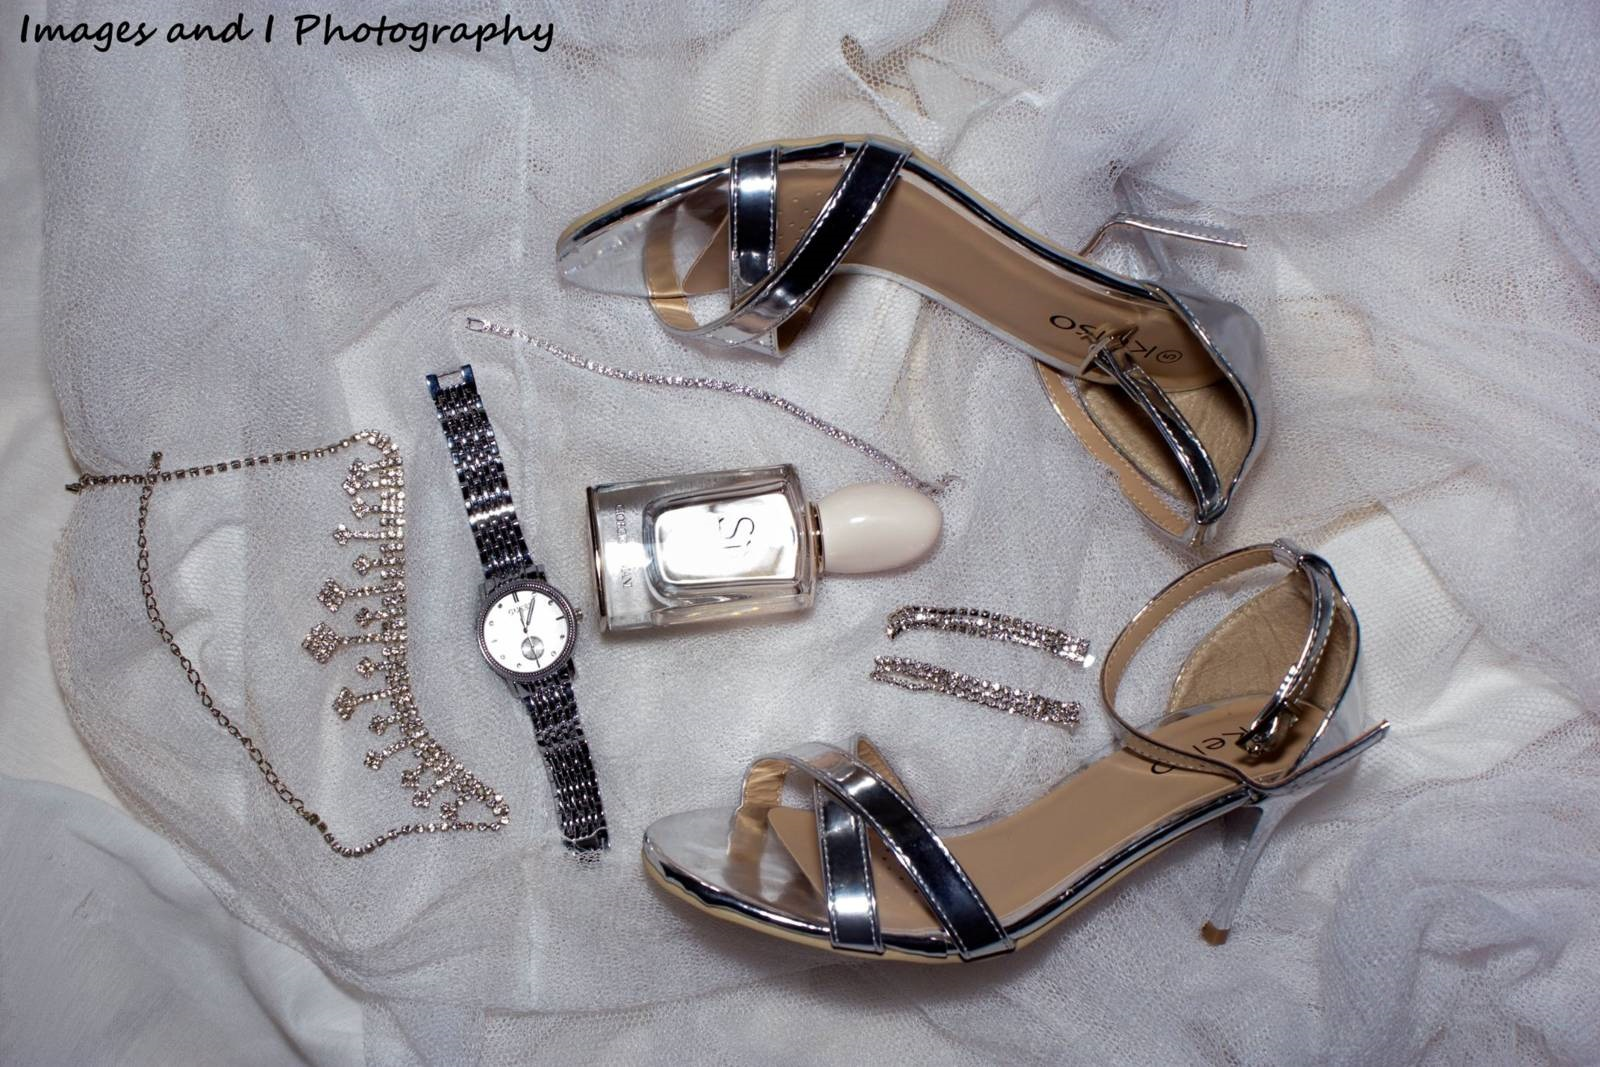 Bride Shoes and Jewelery Wedding Photos | Photoshoots Pretoria